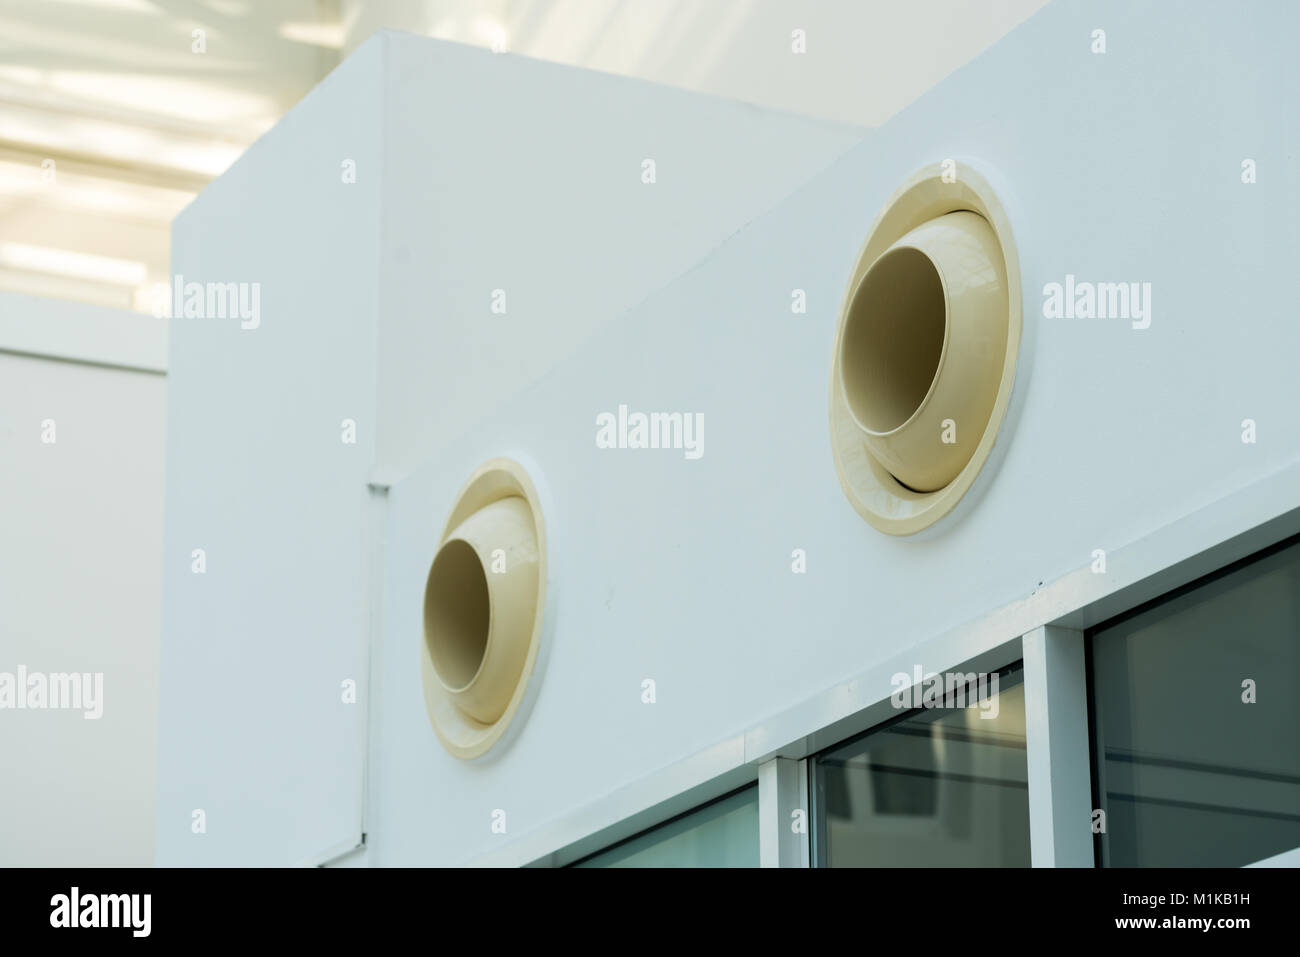 Air Vent Wall Stock Photos & Air Vent Wall Stock Images - Alamy